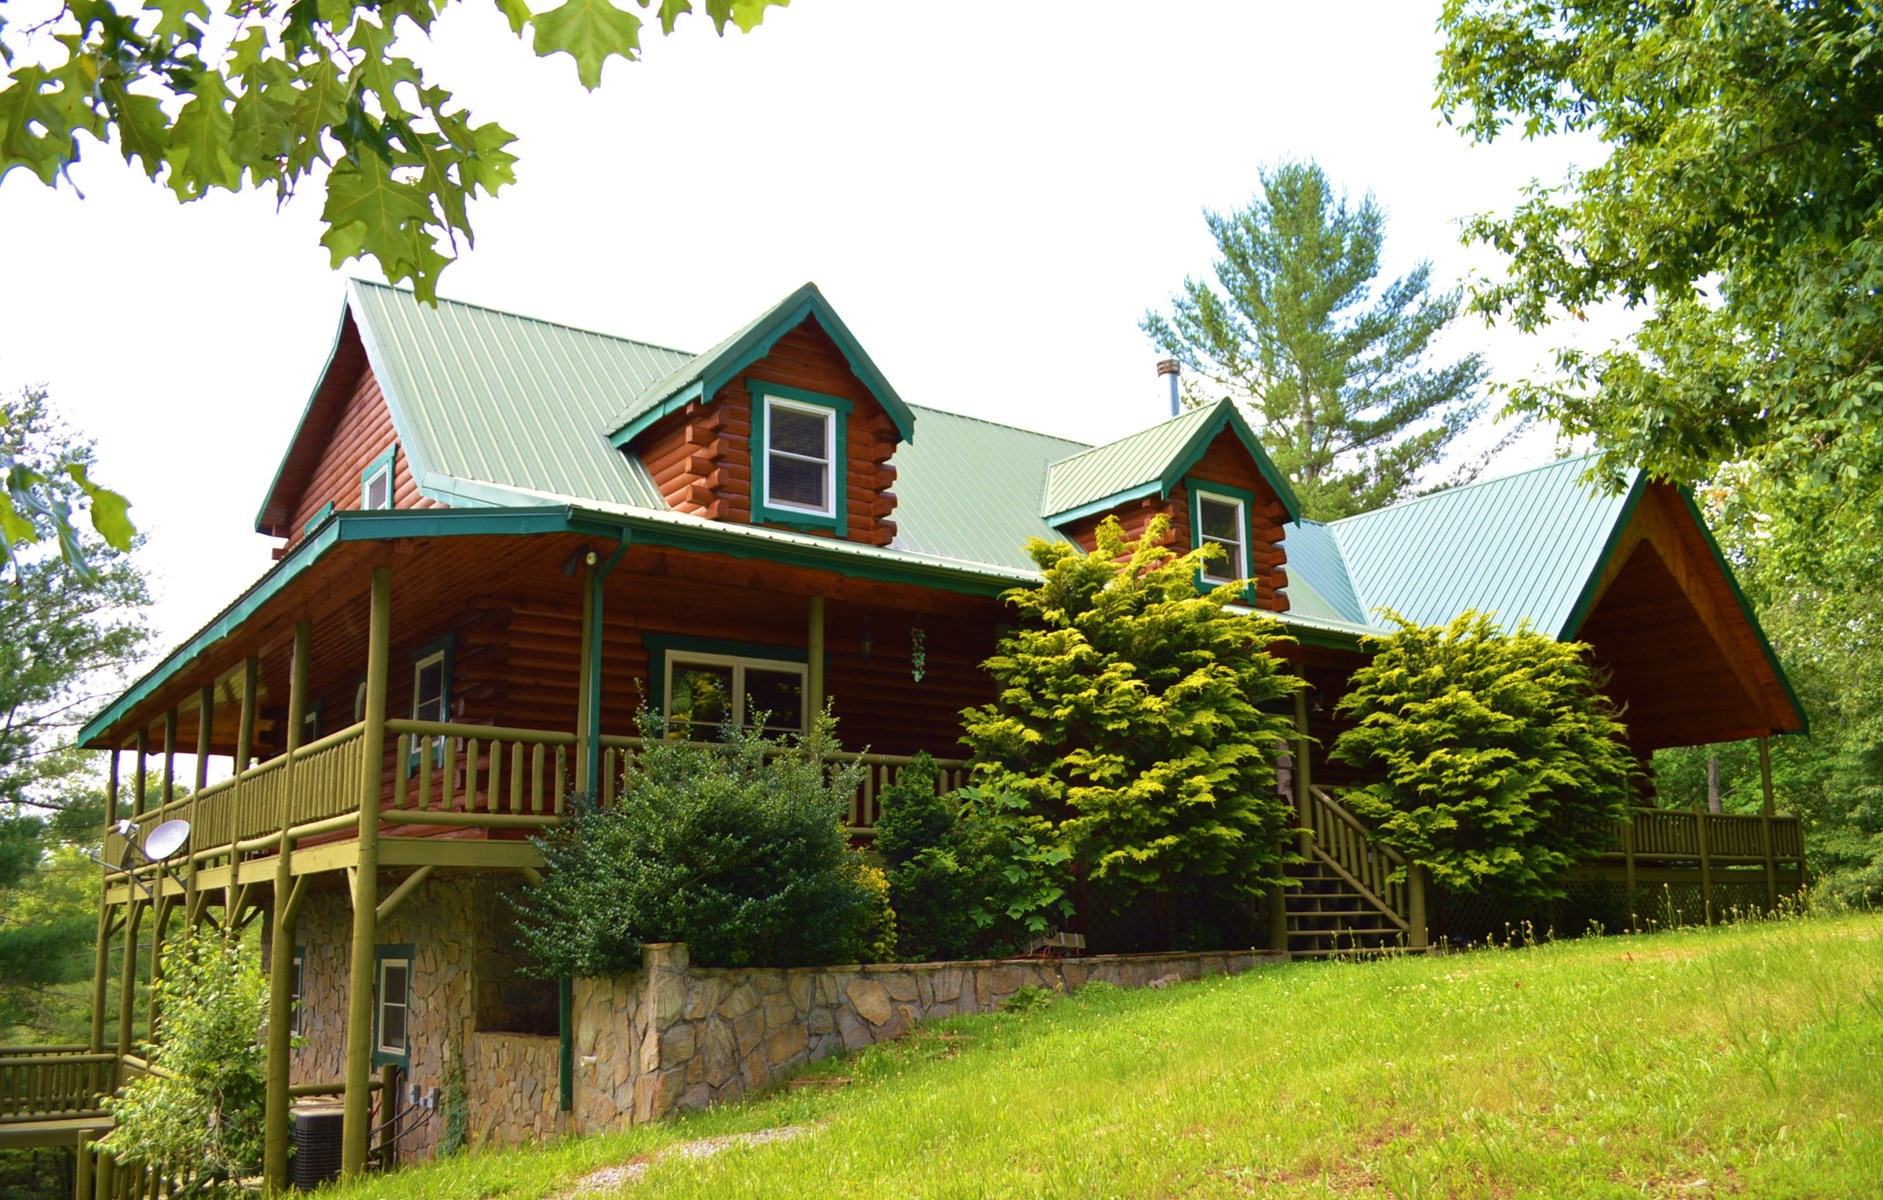 Log Home with 5 Bedrooms and 4 Bathrooms on 12+ Acres.